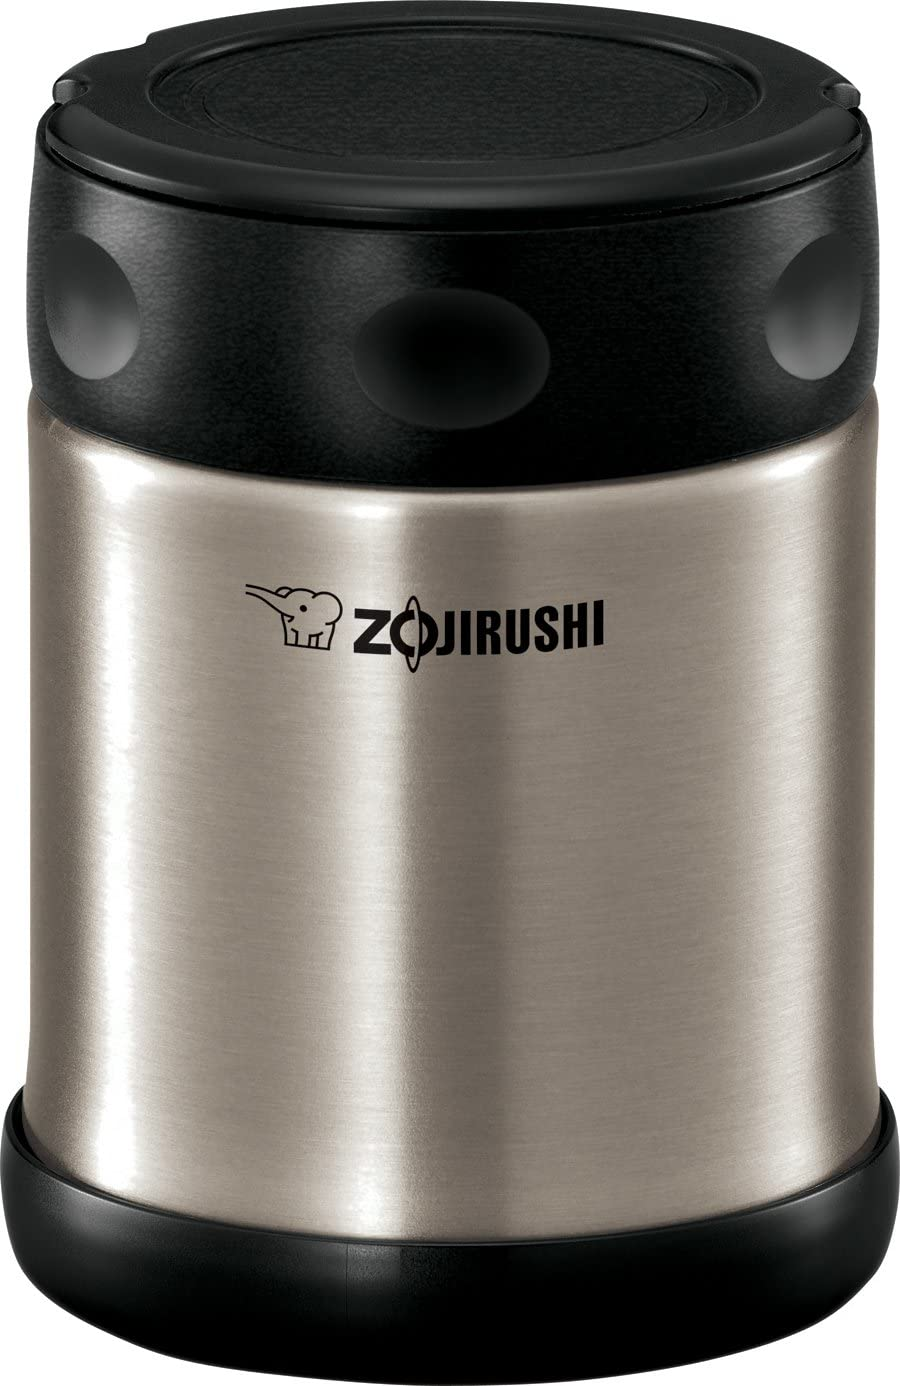 Zojirushi SW-EAE35XA 11-3/4-Ounce Stainless-Steel Food Jar